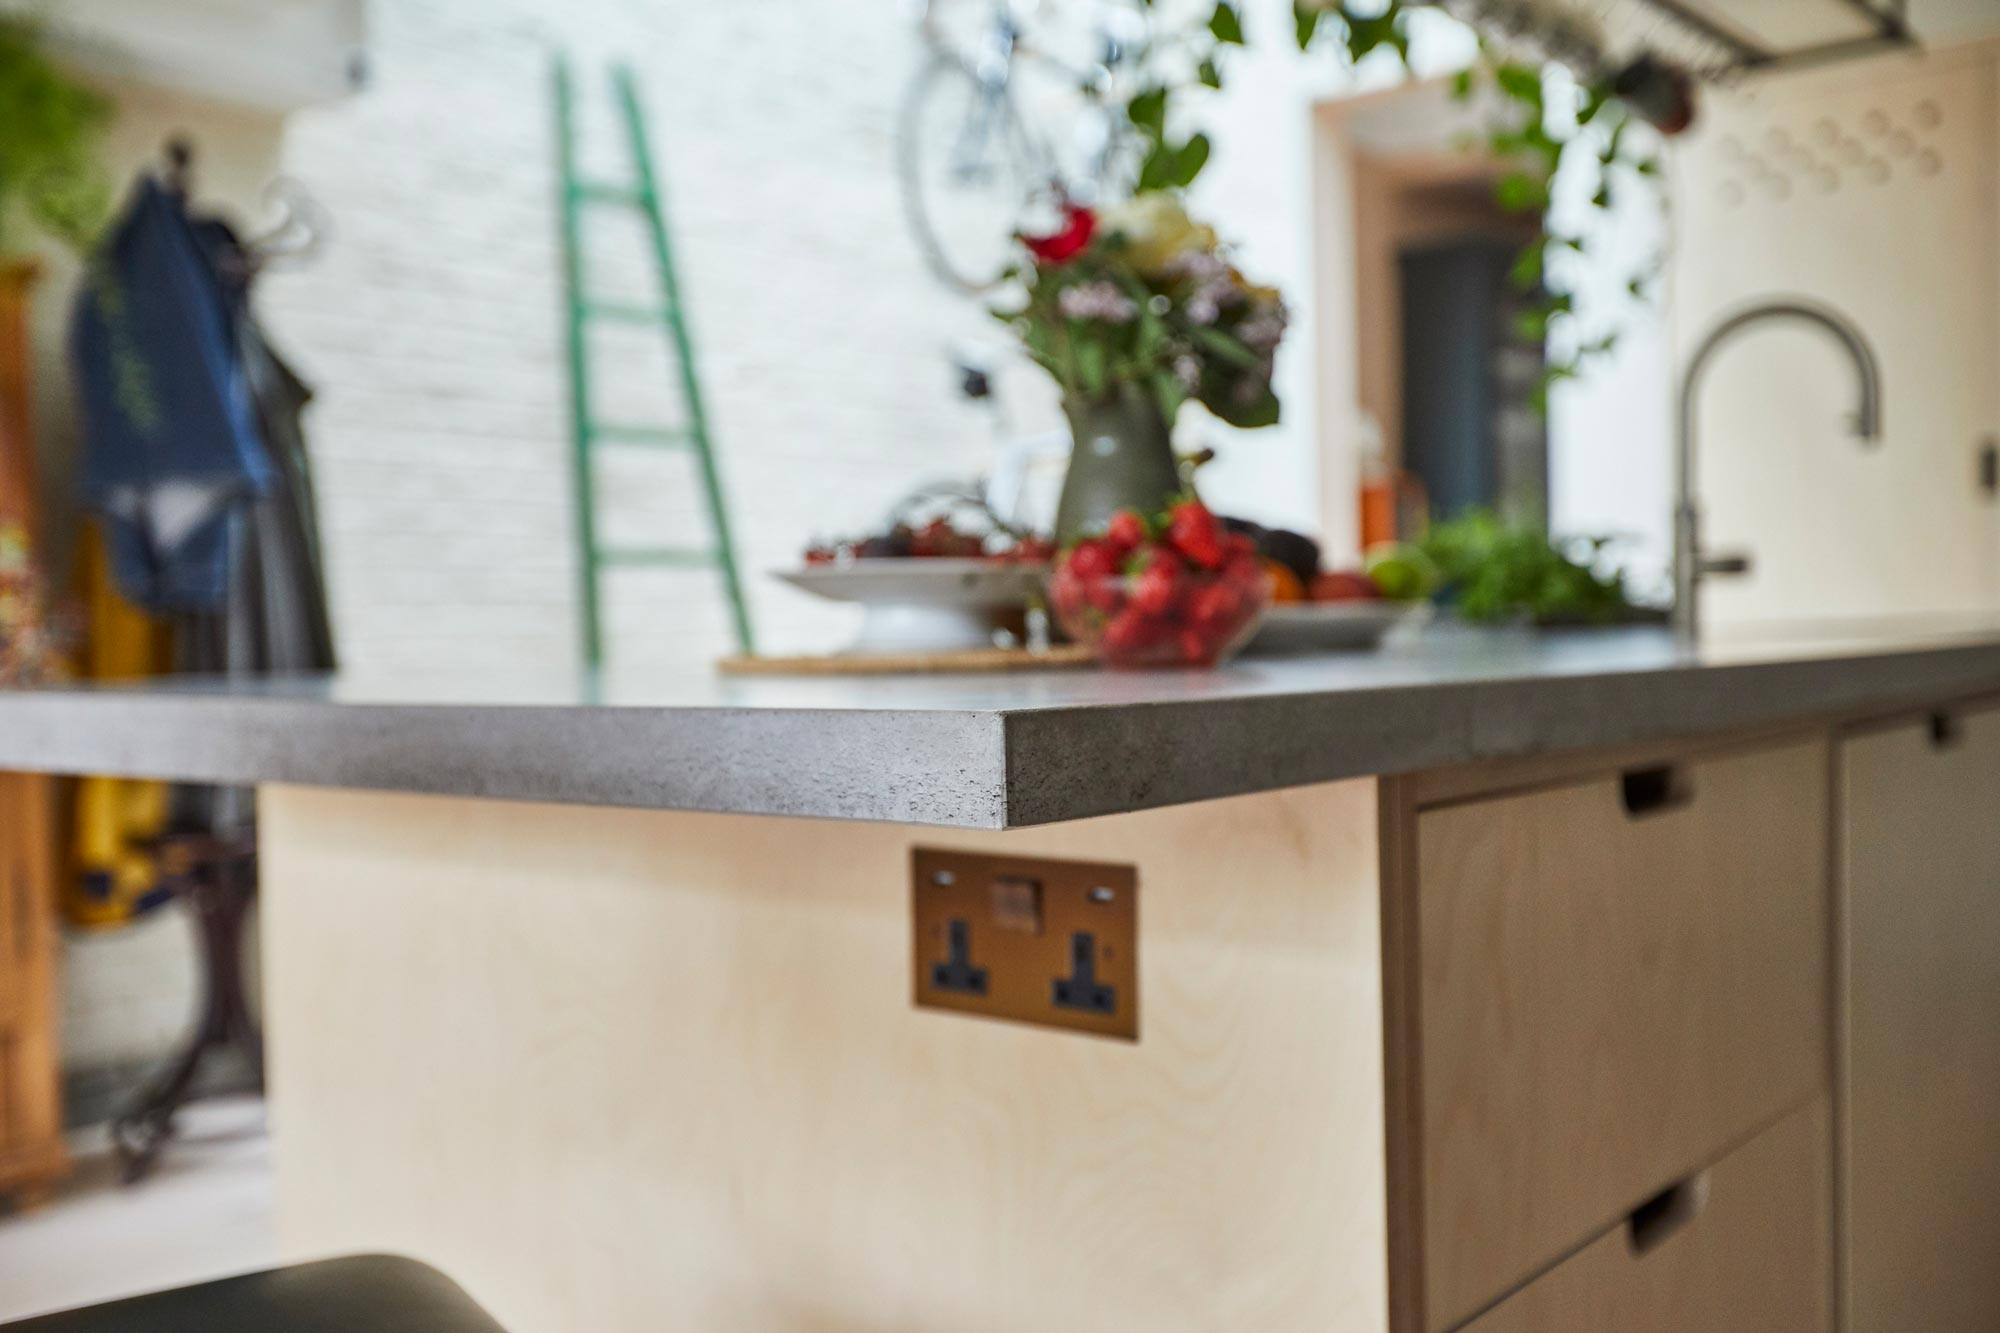 Solid concrete worktop on bespoke plywood kitchen island